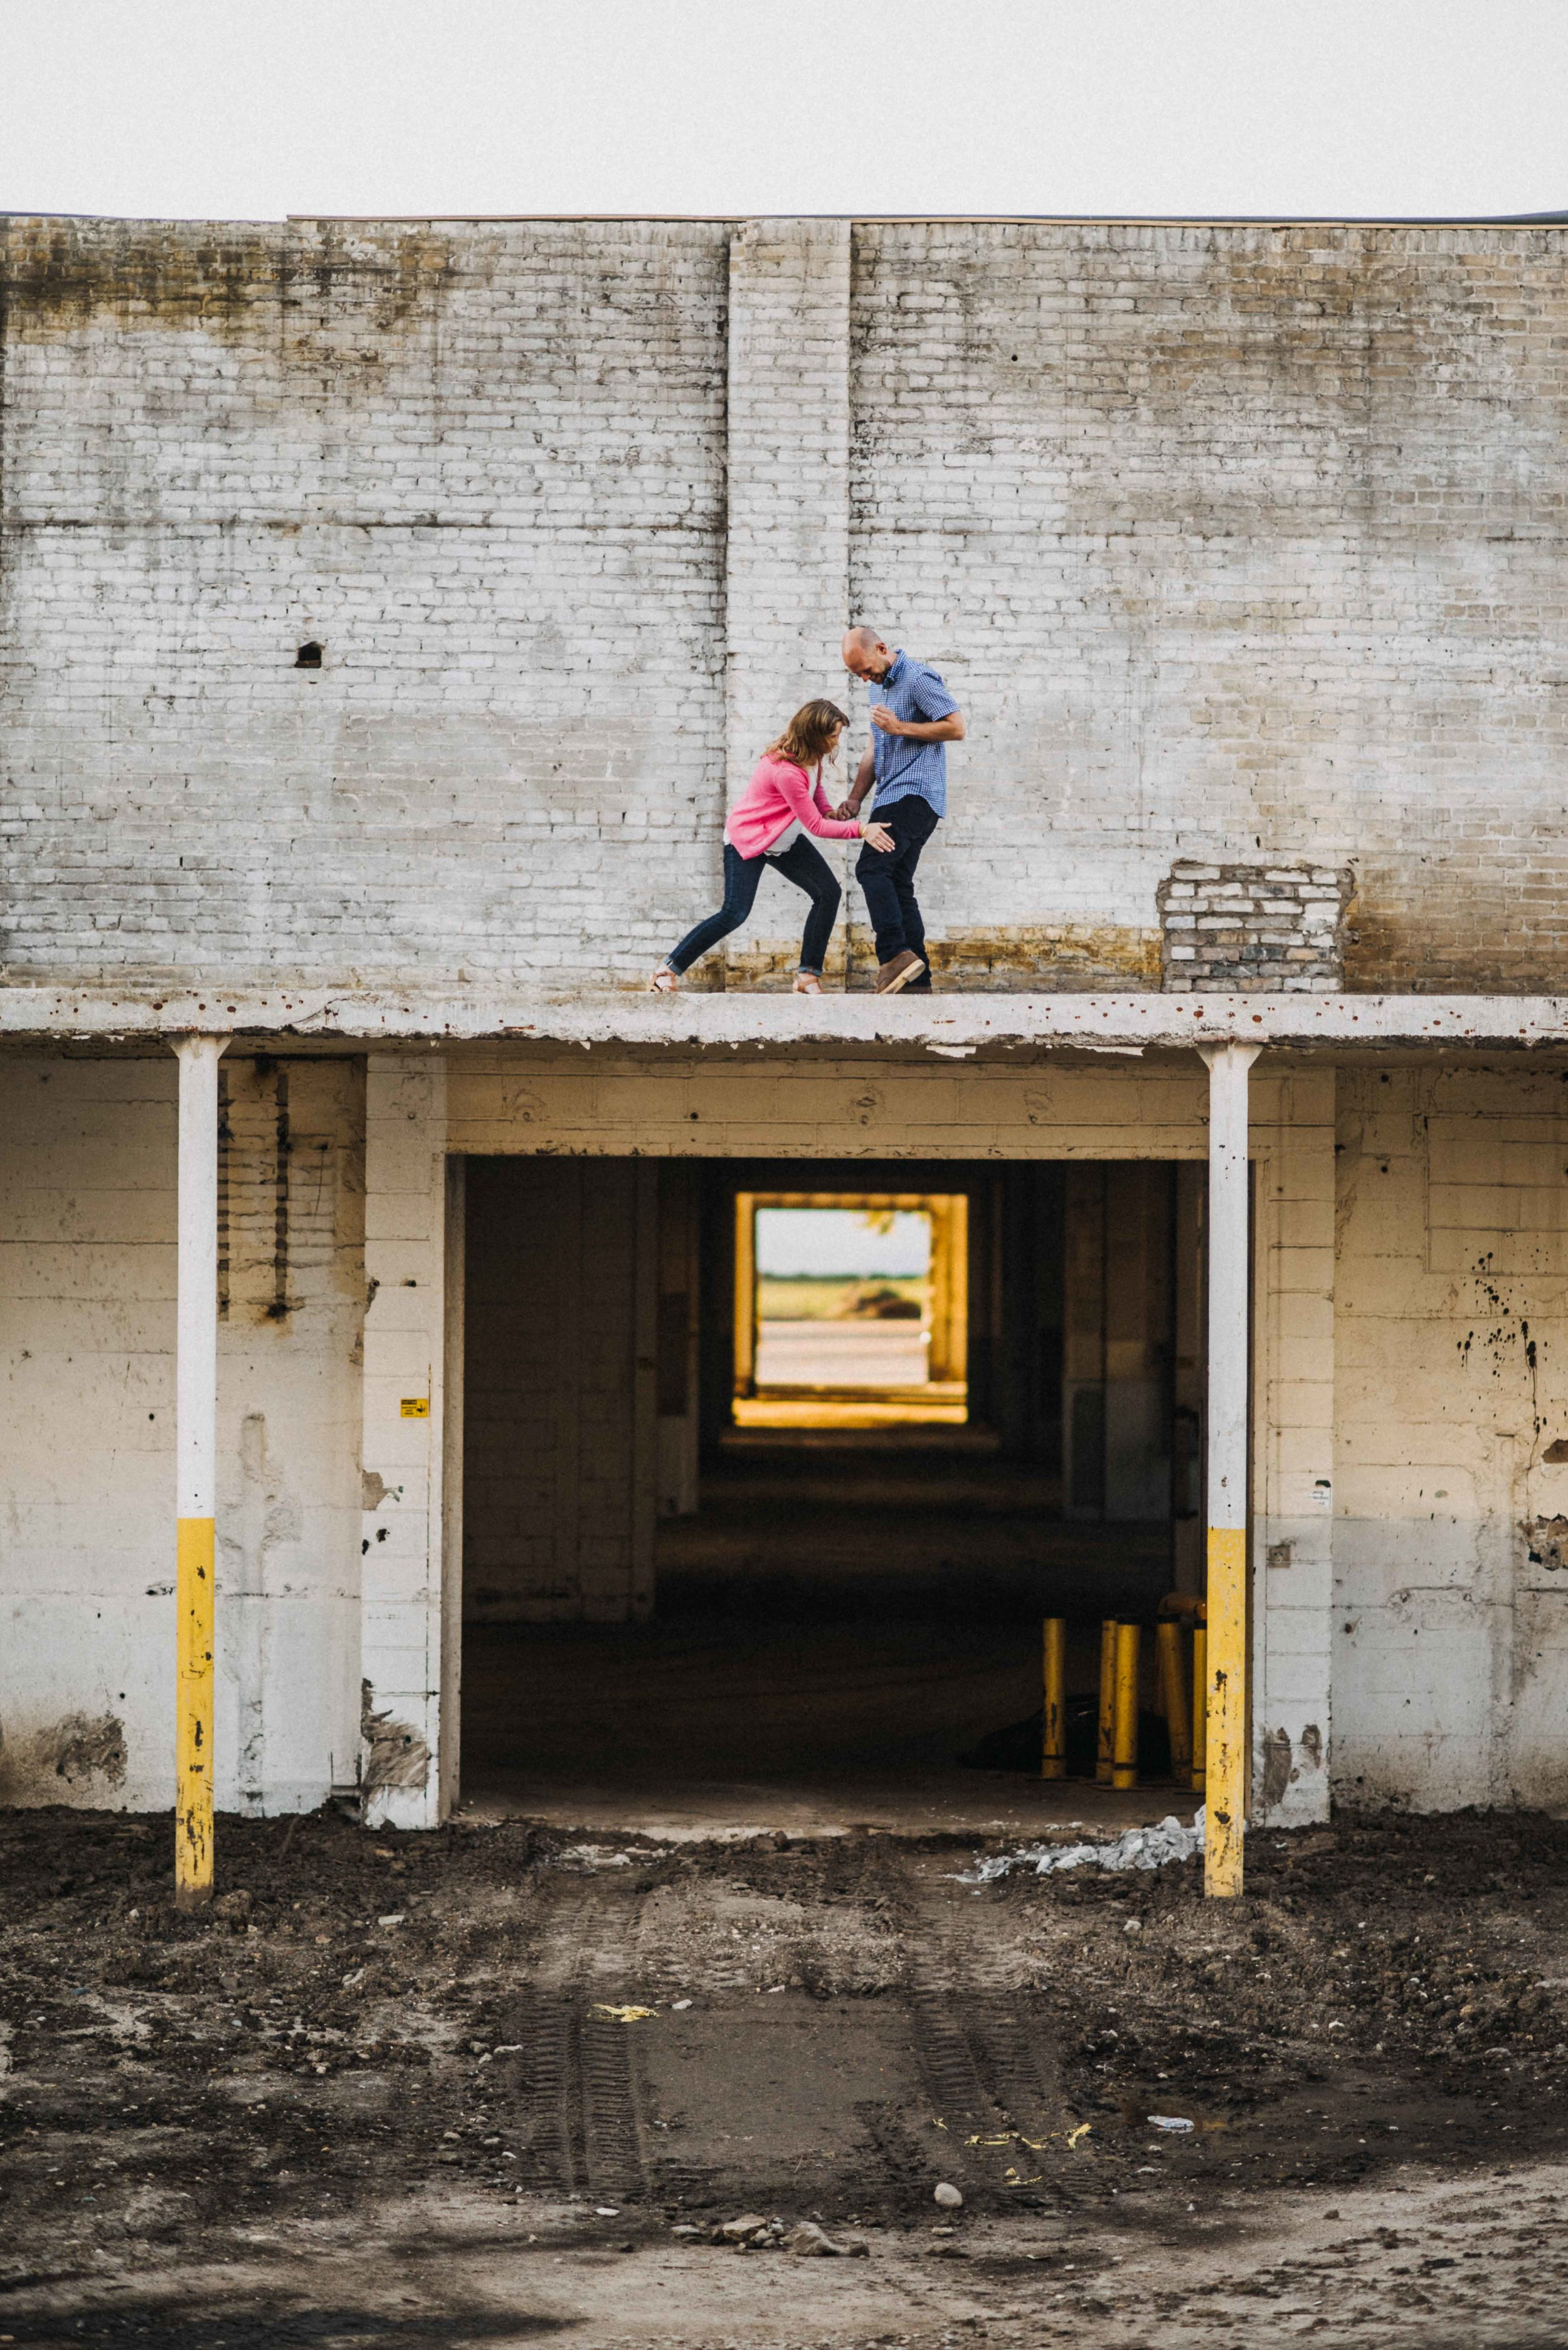 modist_brewing_minneapolis_minnesota_wedding_photography_engagement_session (19 of 32).JPG